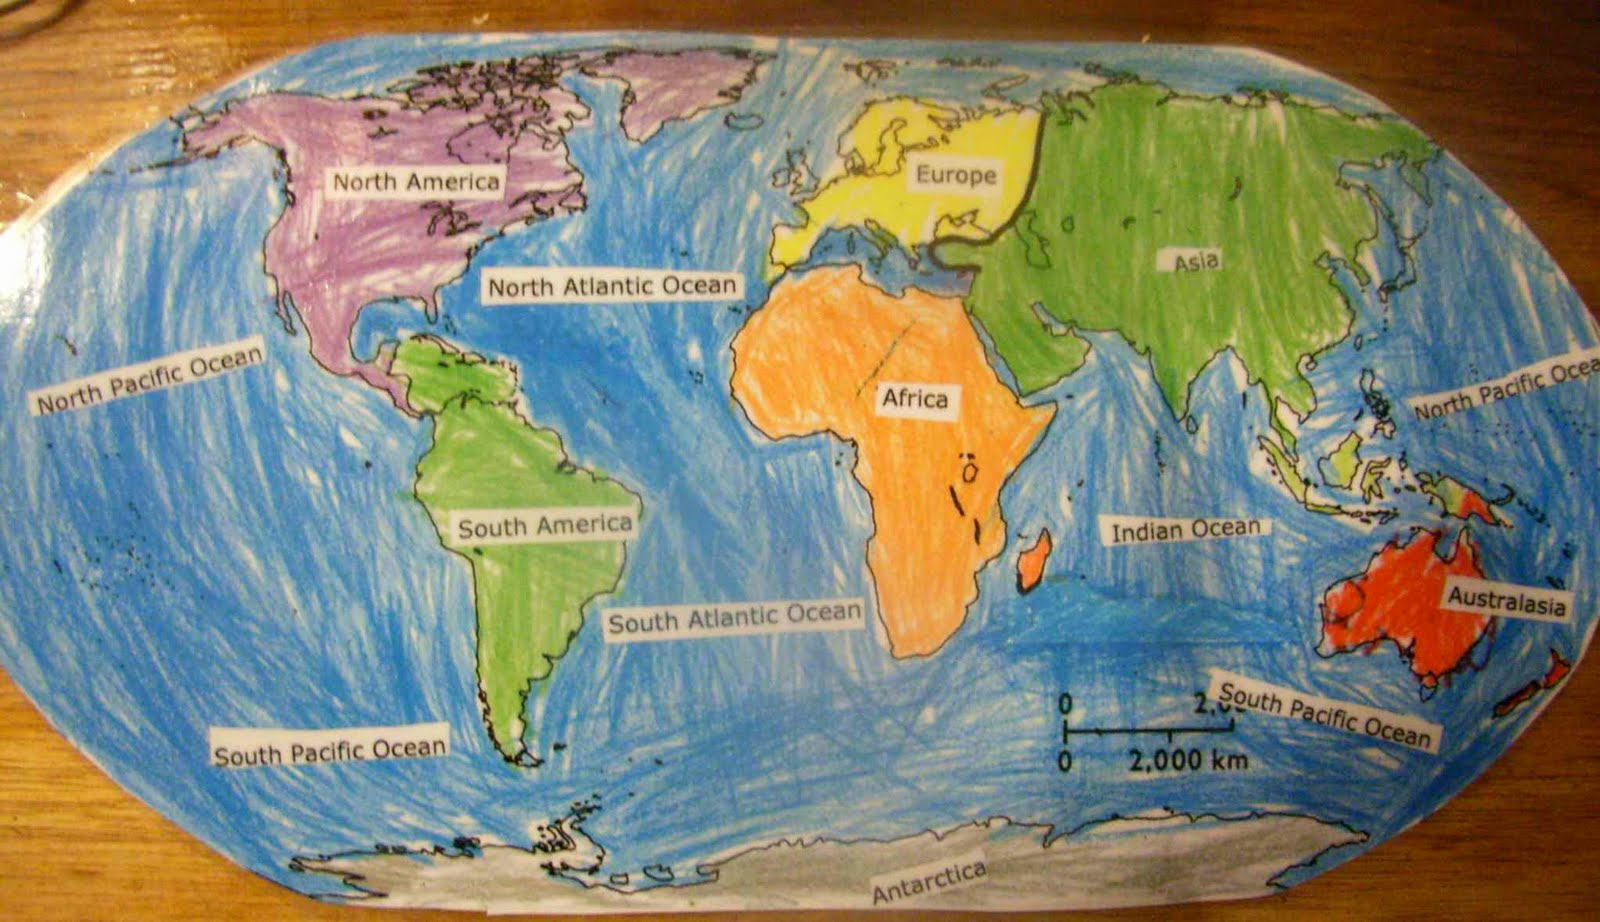 World Map Continents And Oceans - Major oceans of the world map